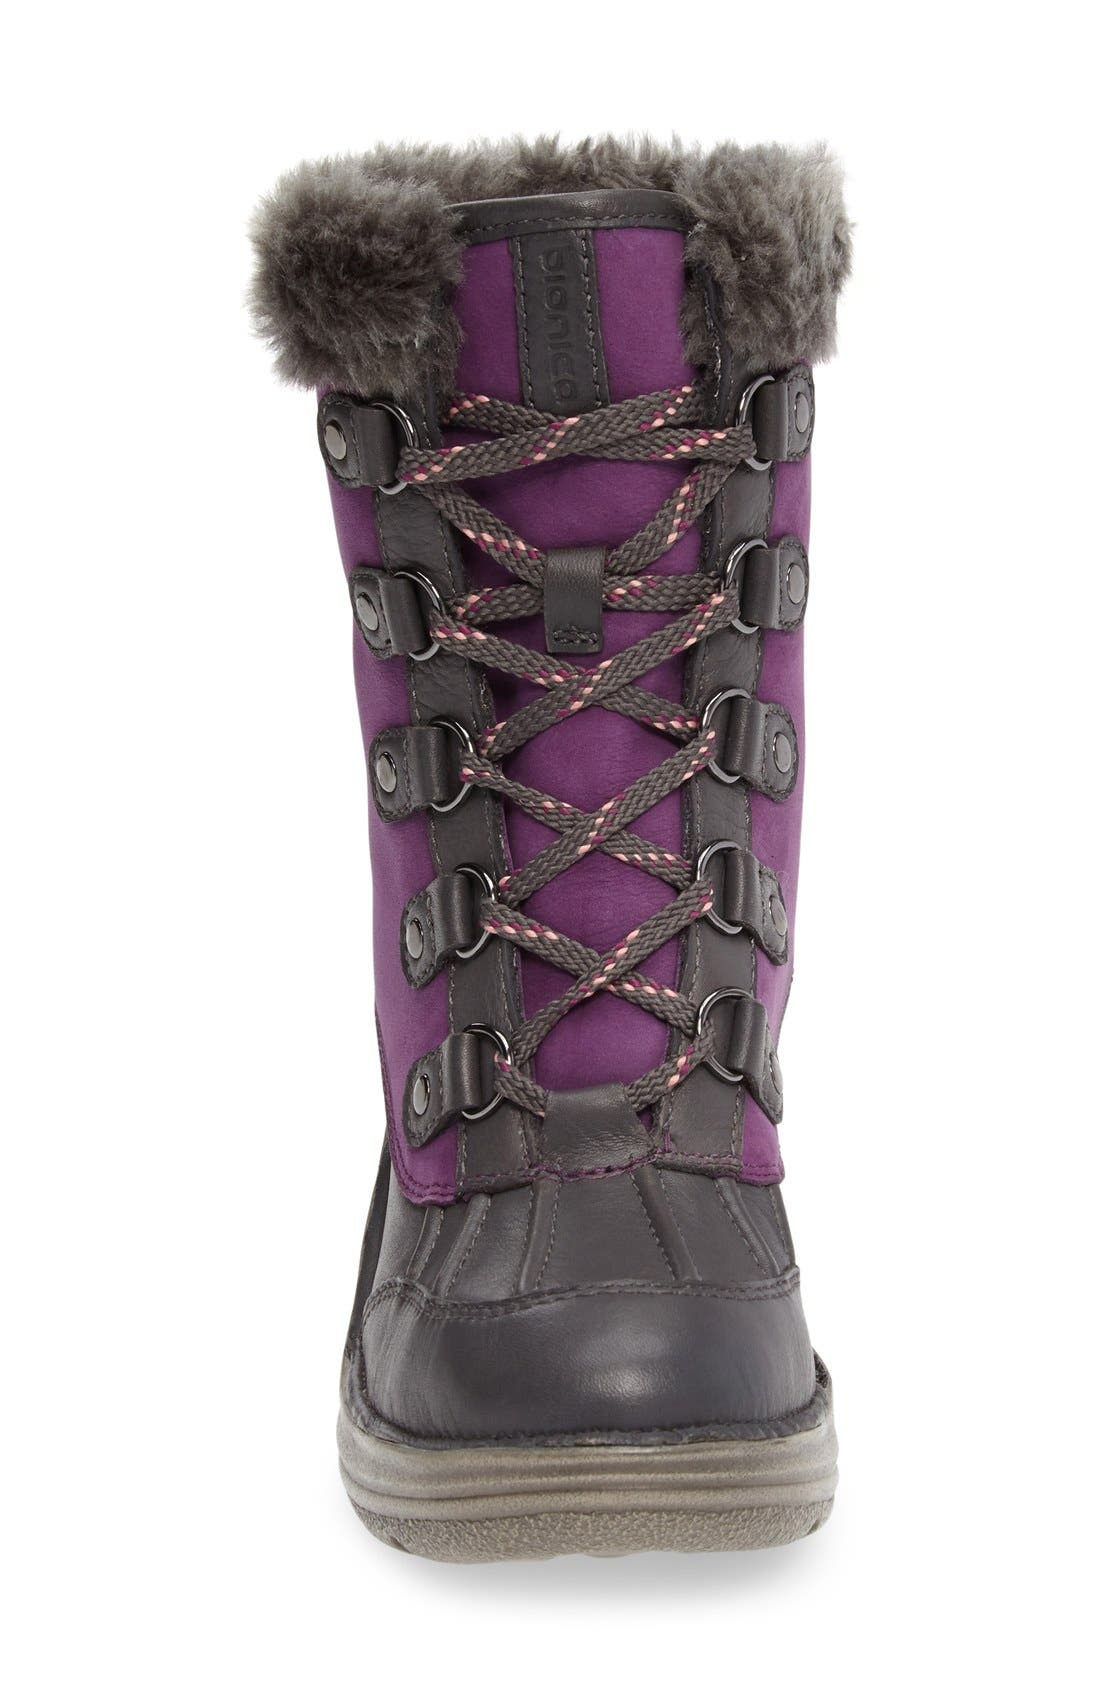 Rosemound Waterproof Boot,                             Alternate thumbnail 3, color,                             Purple/ Pewter Leather